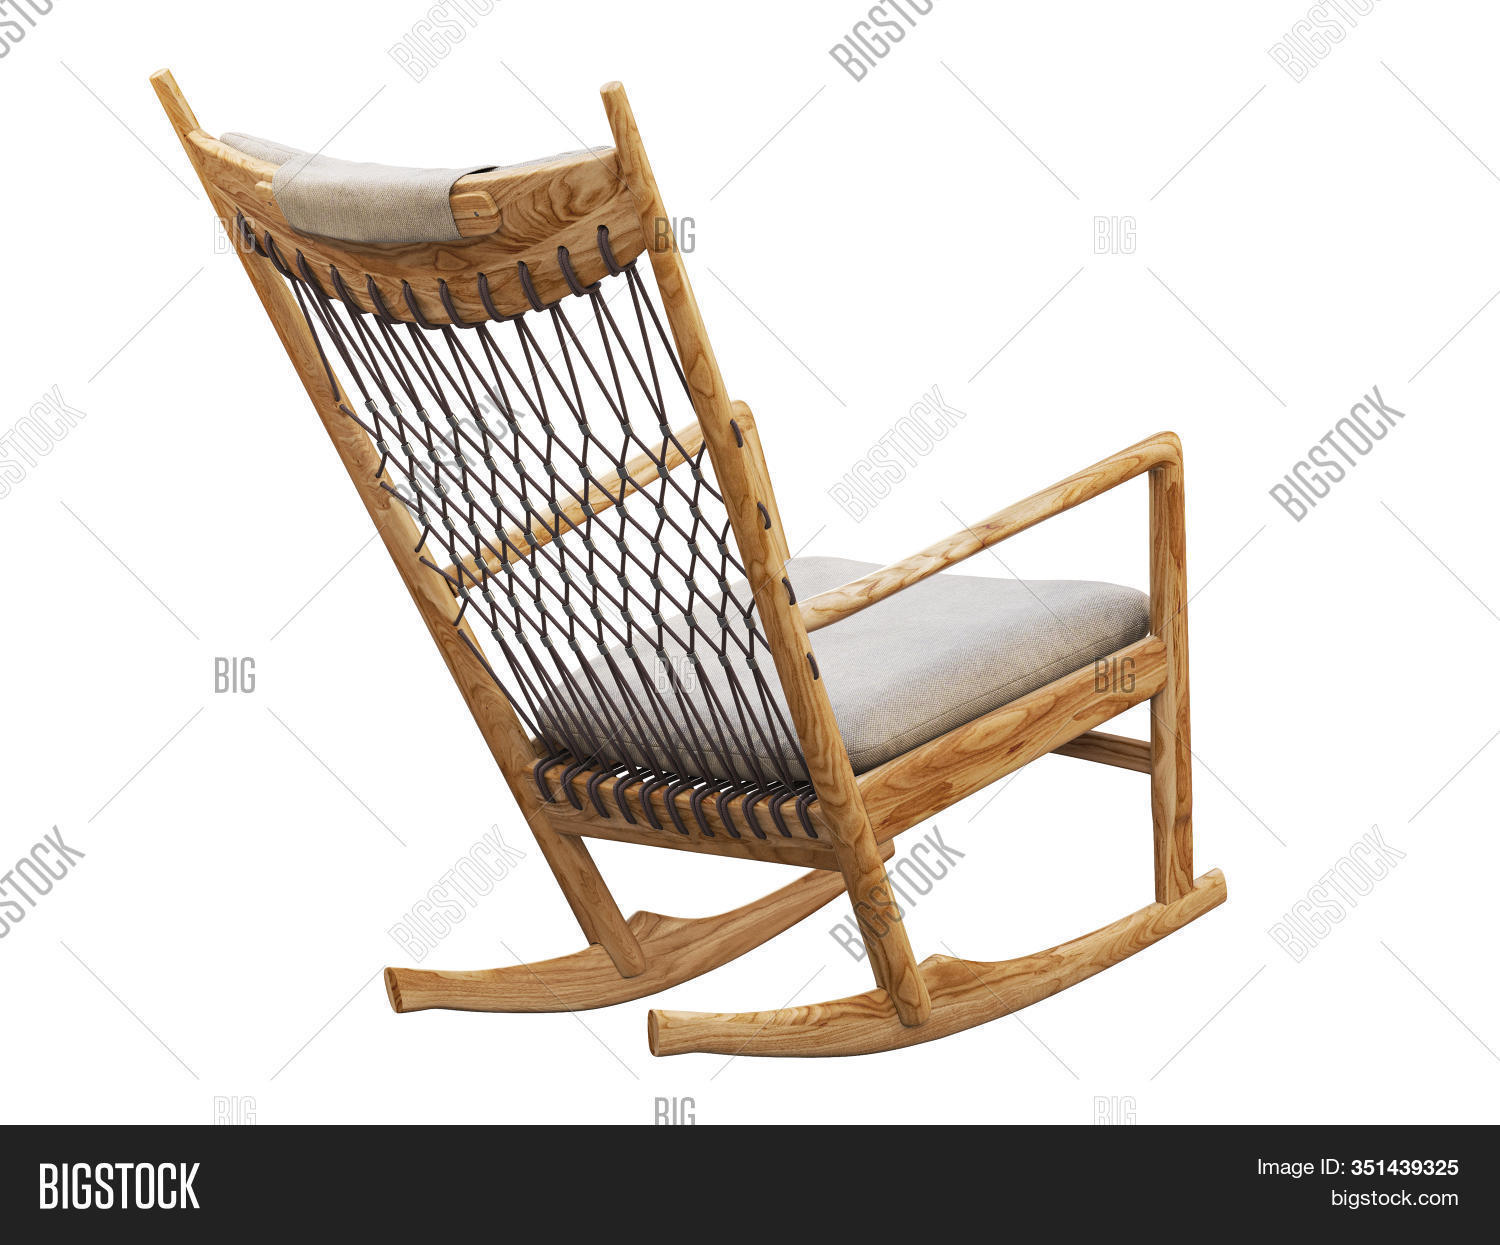 Wooden Rocking Chair Image Photo Free Trial Bigstock